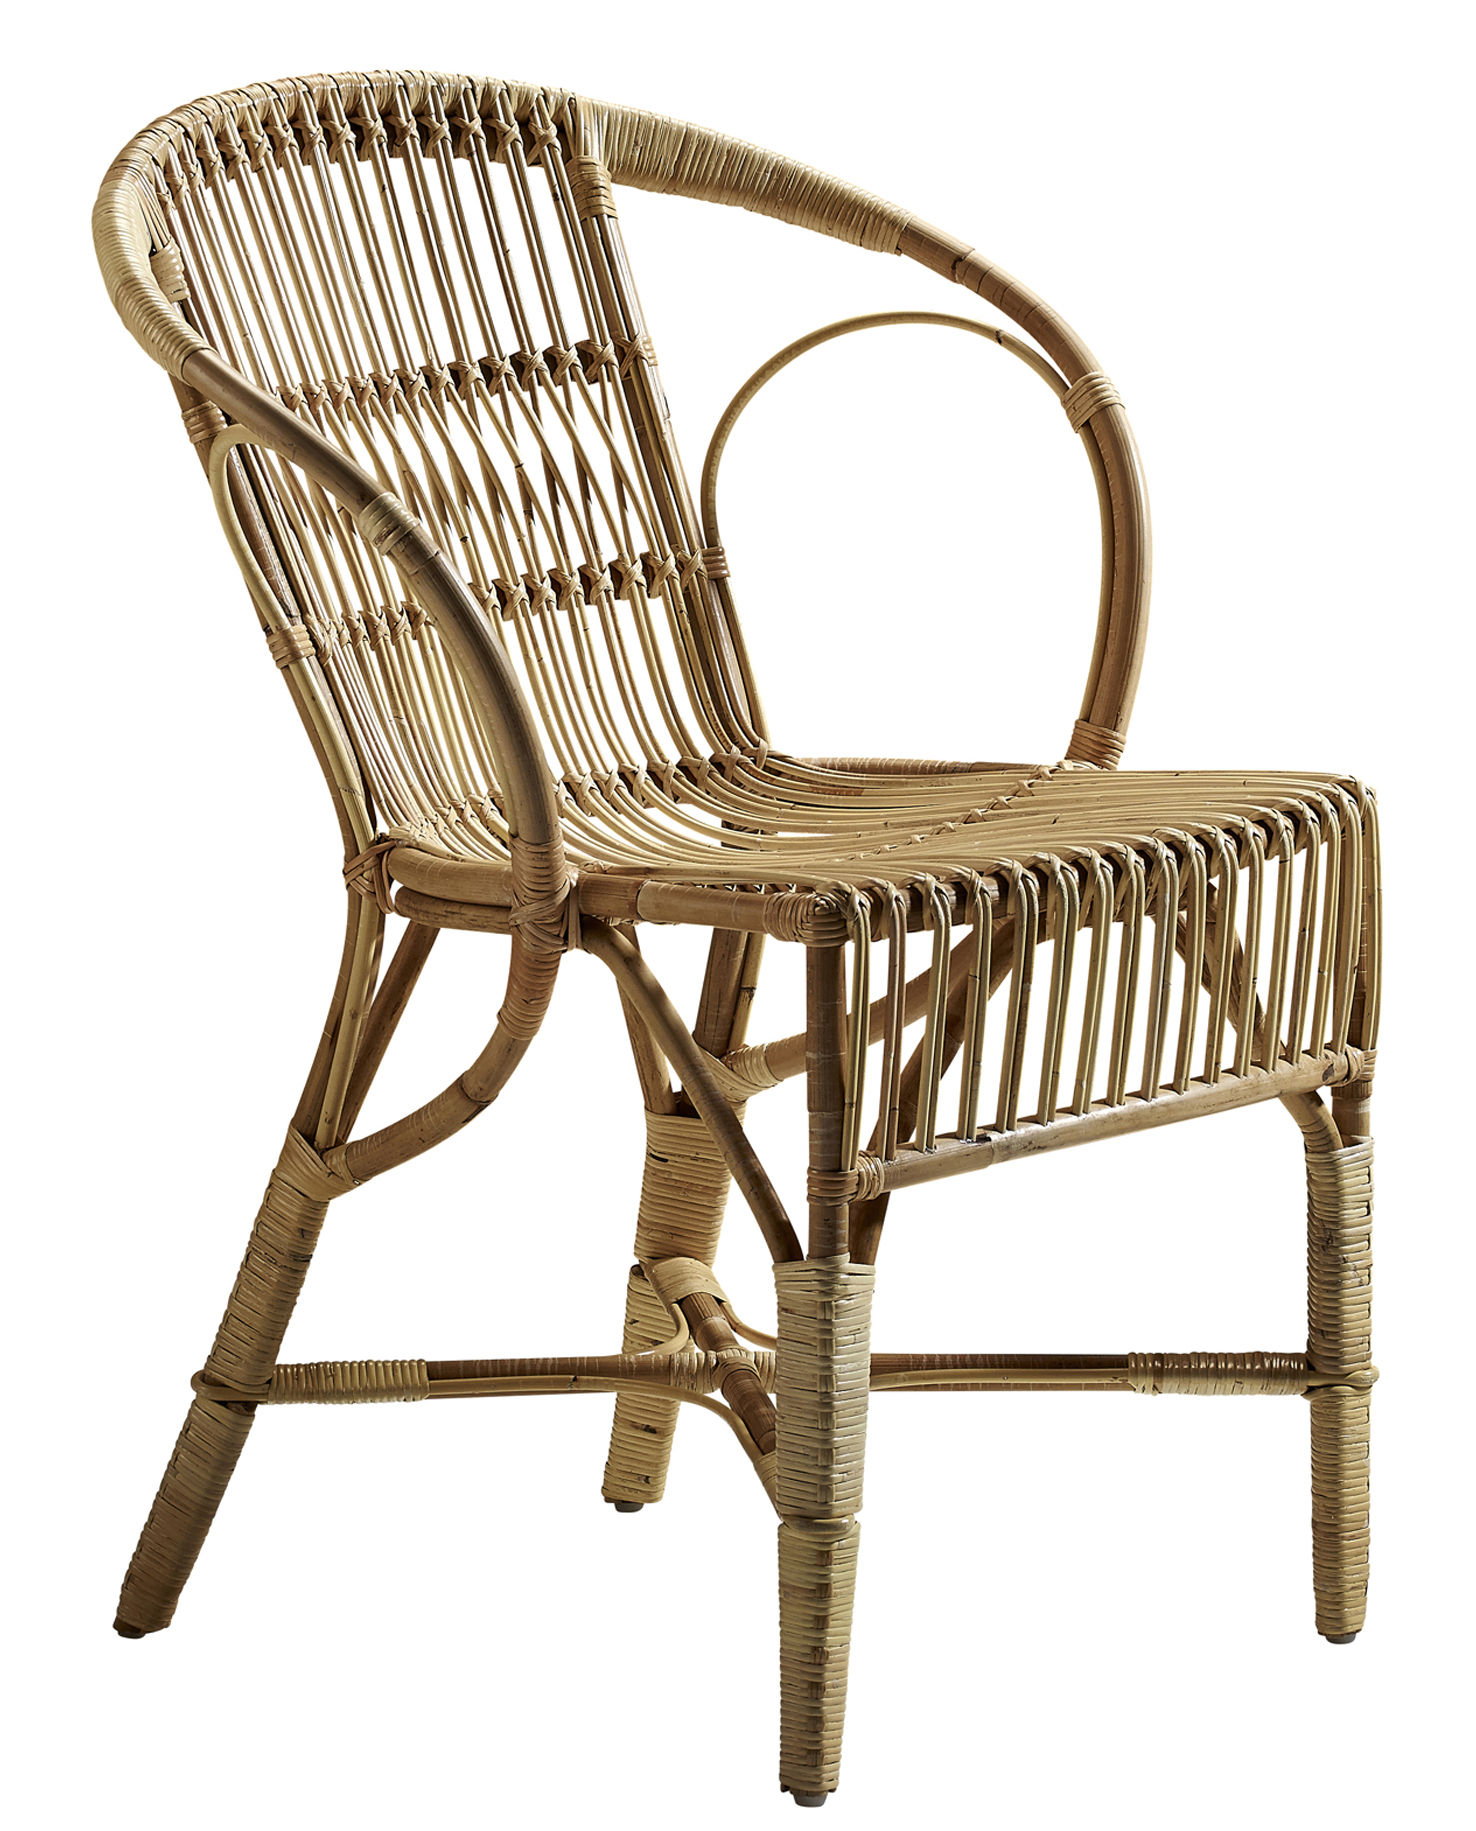 Furniture - Armchairs - Wengler Armchair - Reissue 1902 by Sika Design - Natural armchair - Rattan